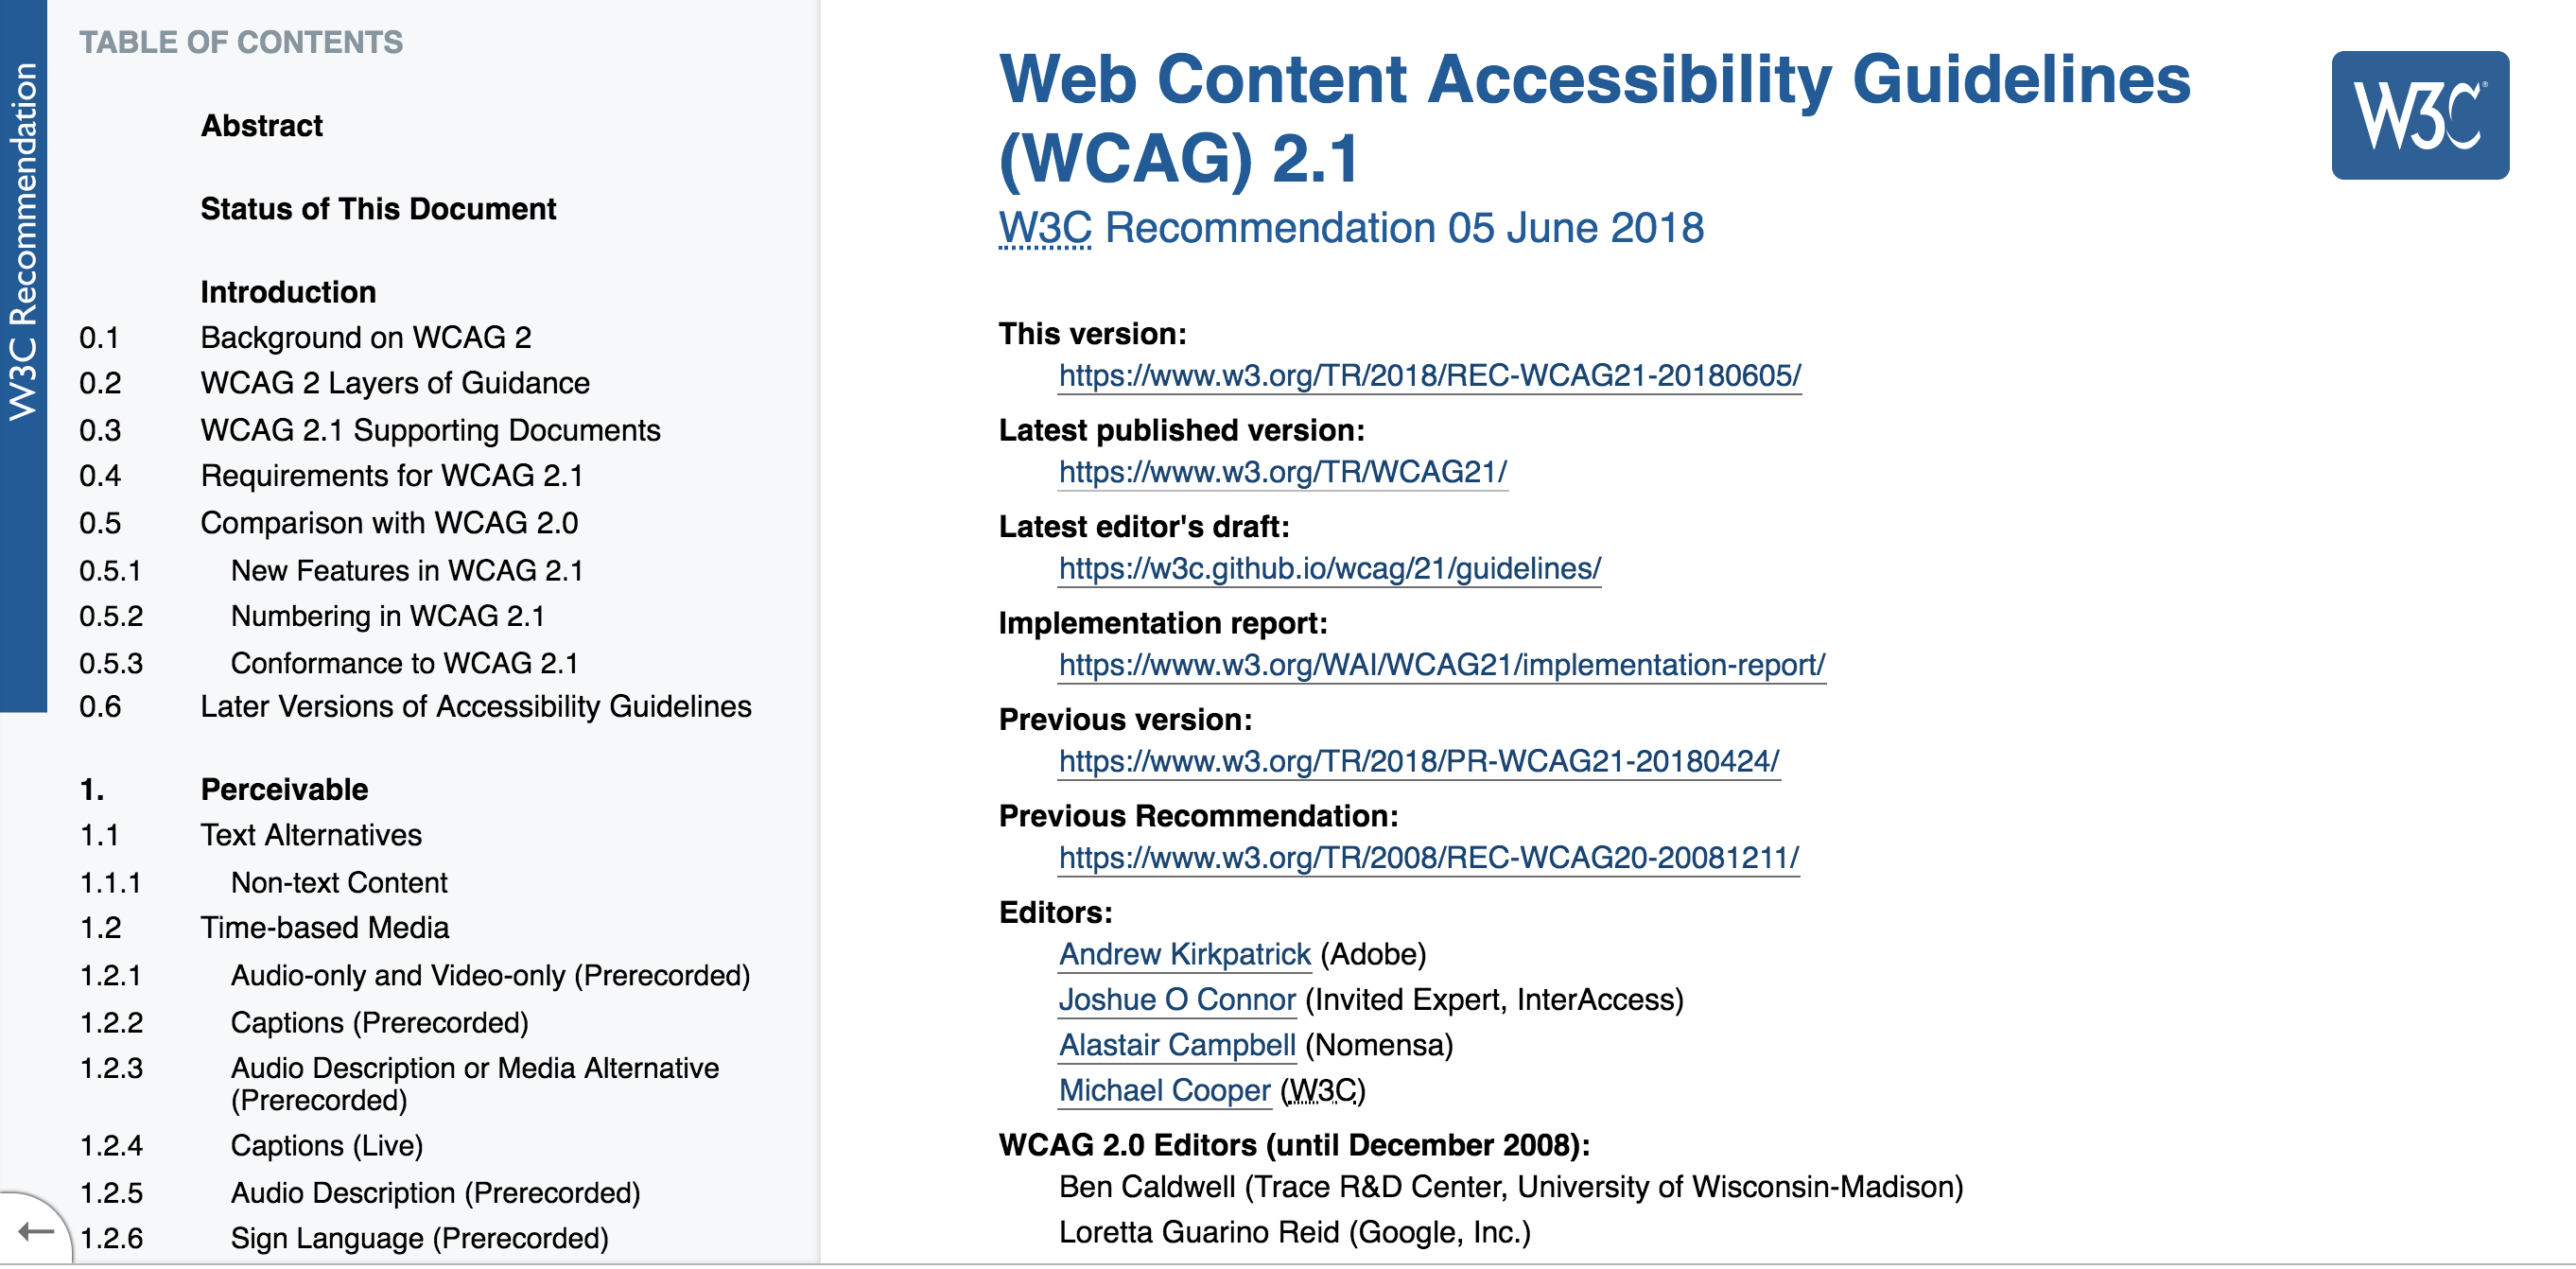 The Web Content Accessibility Guidelines (WCAG 2.1) web standard home page